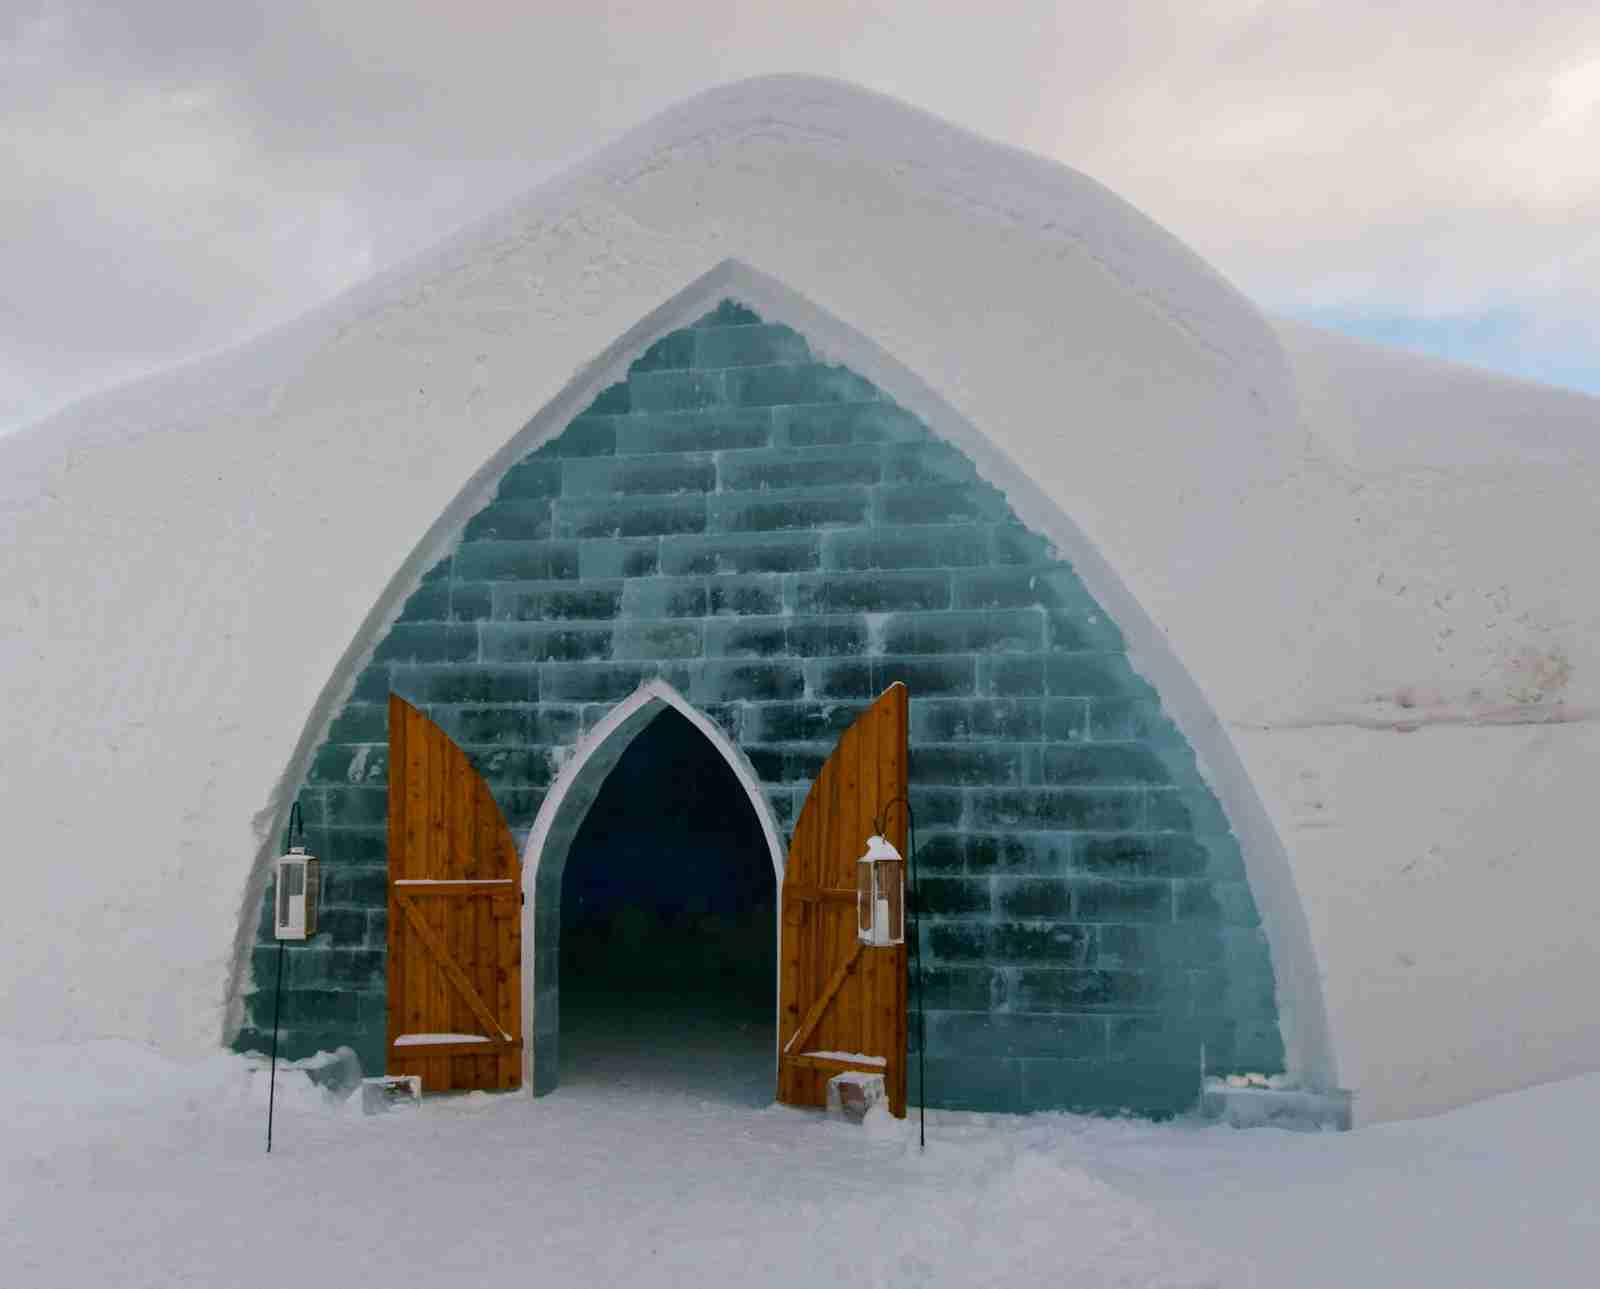 The Hotel De Glace entrance. (Photo by Jon Garrison/Unsplash)